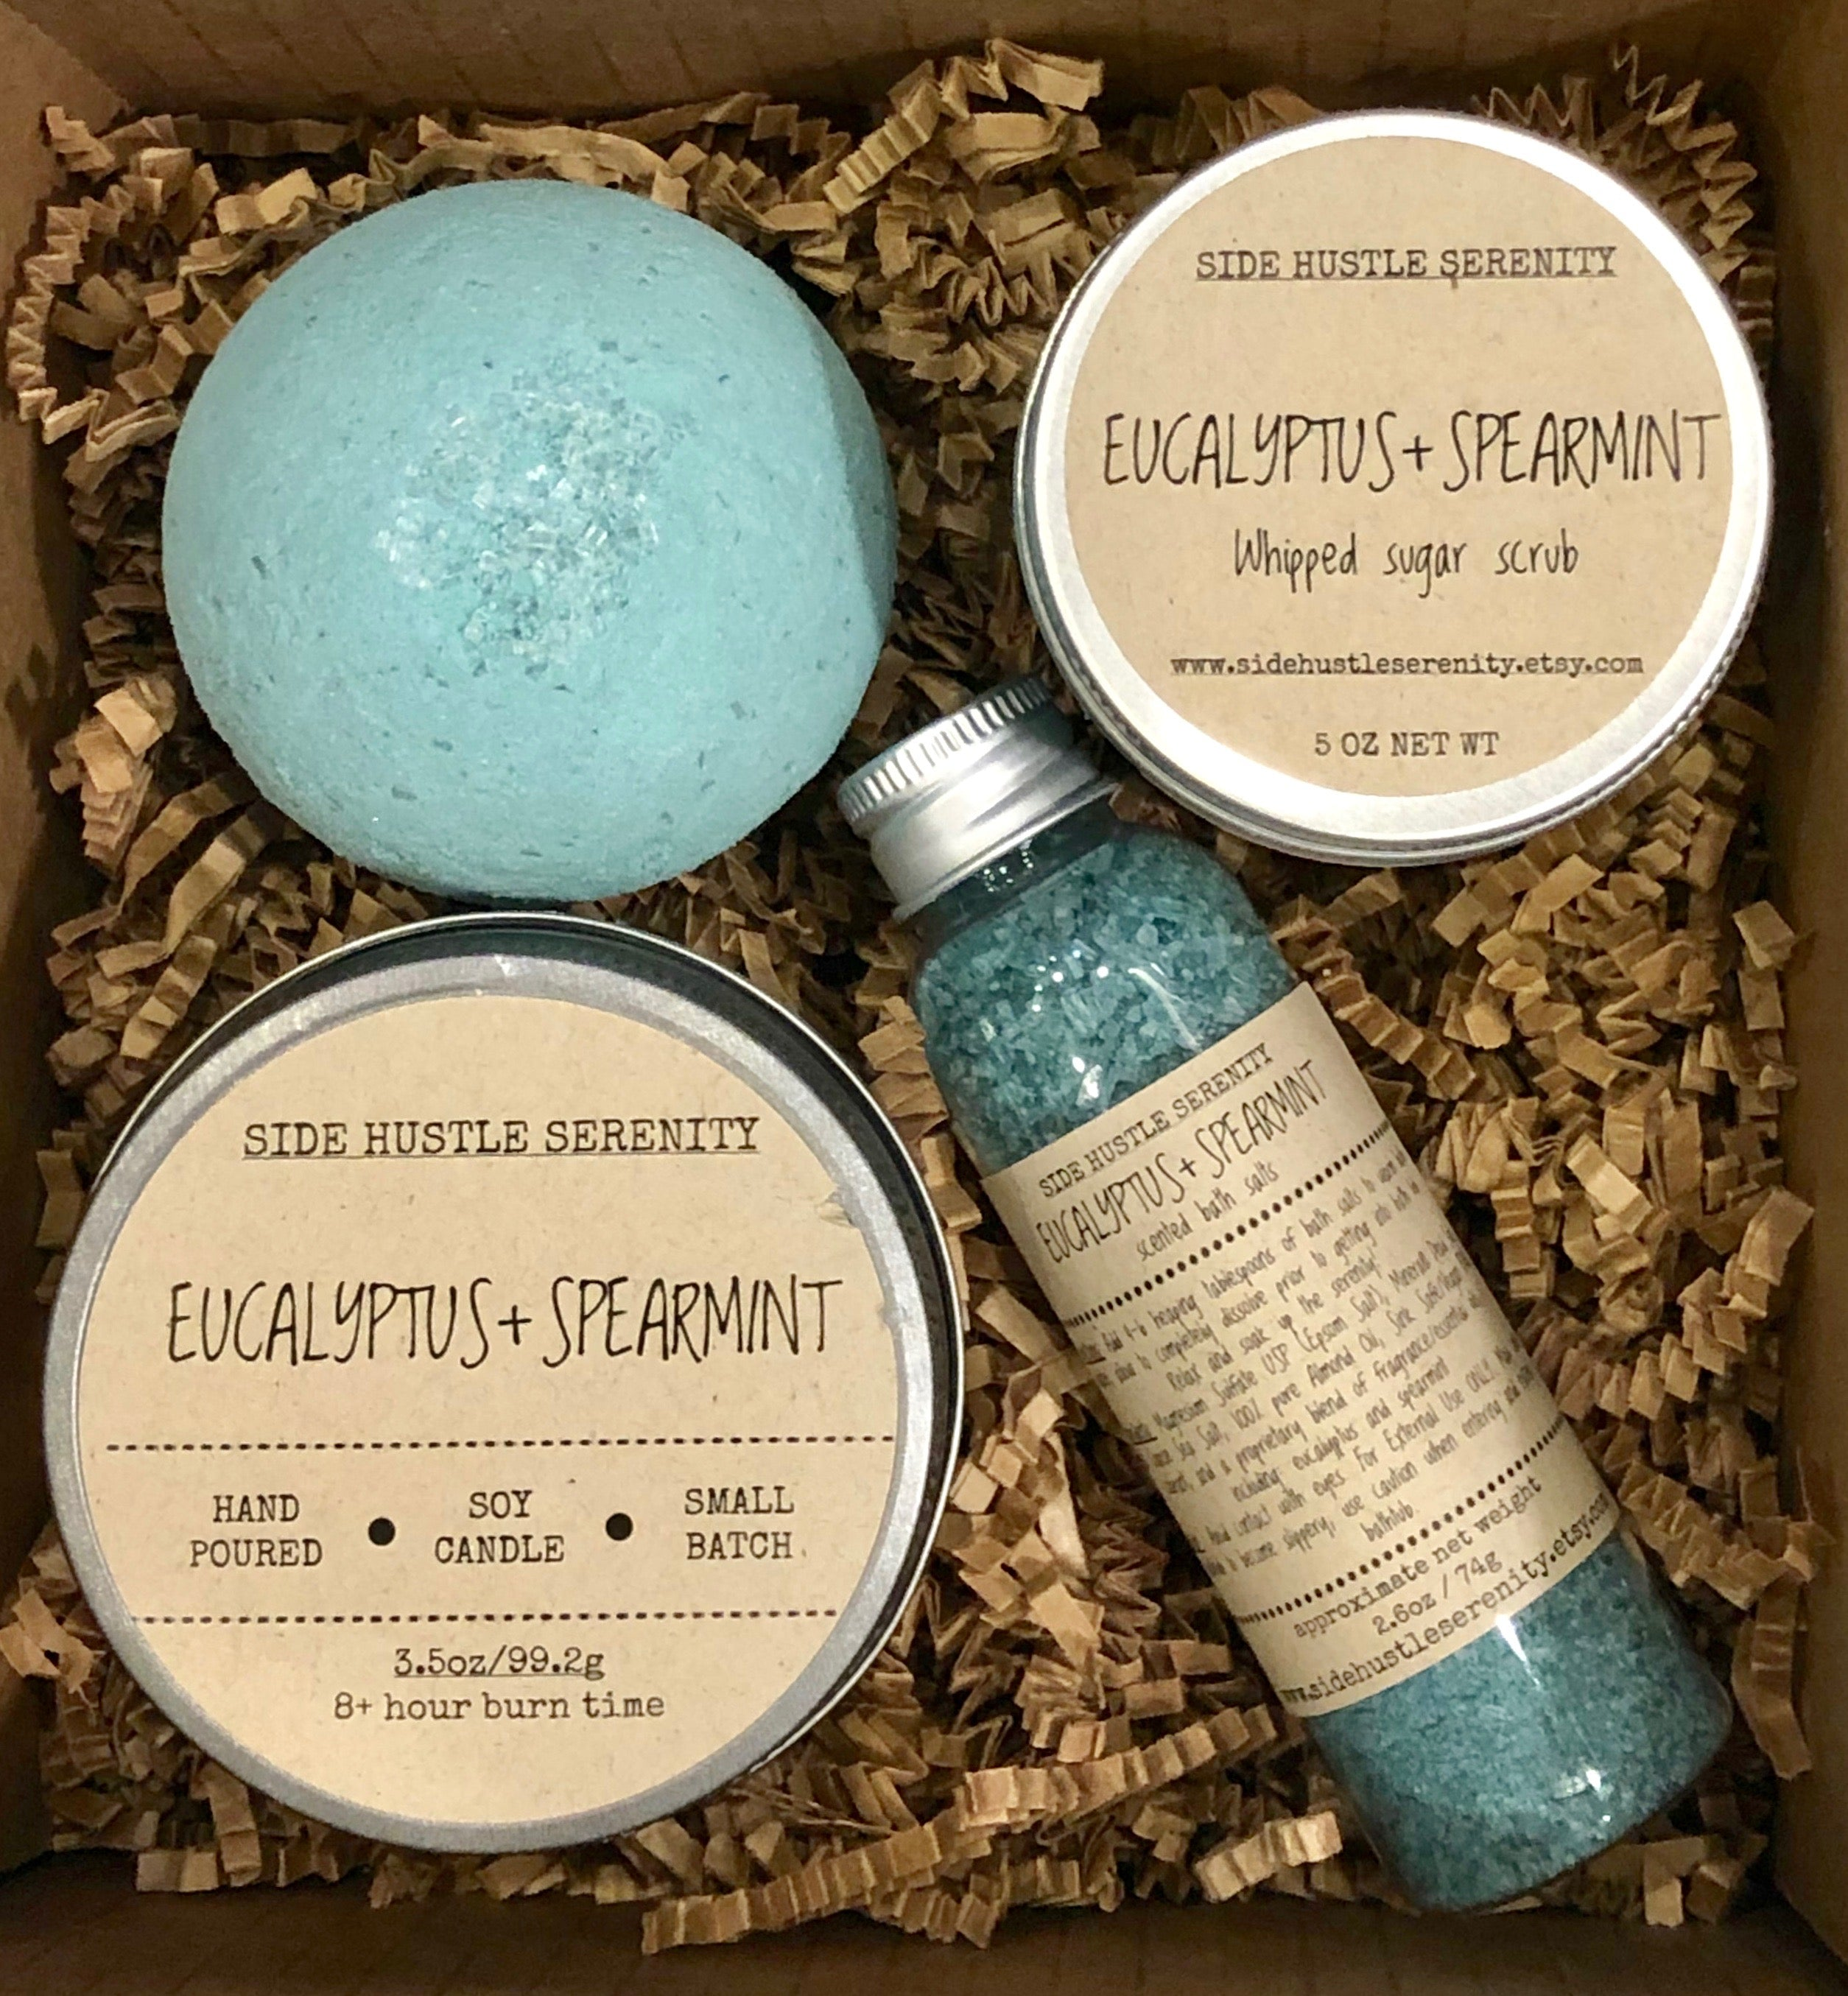 Mini Spa Gift Set Eucalyptus Spearmint Gift Set Pamper Box Gift Side Hustle Serenity